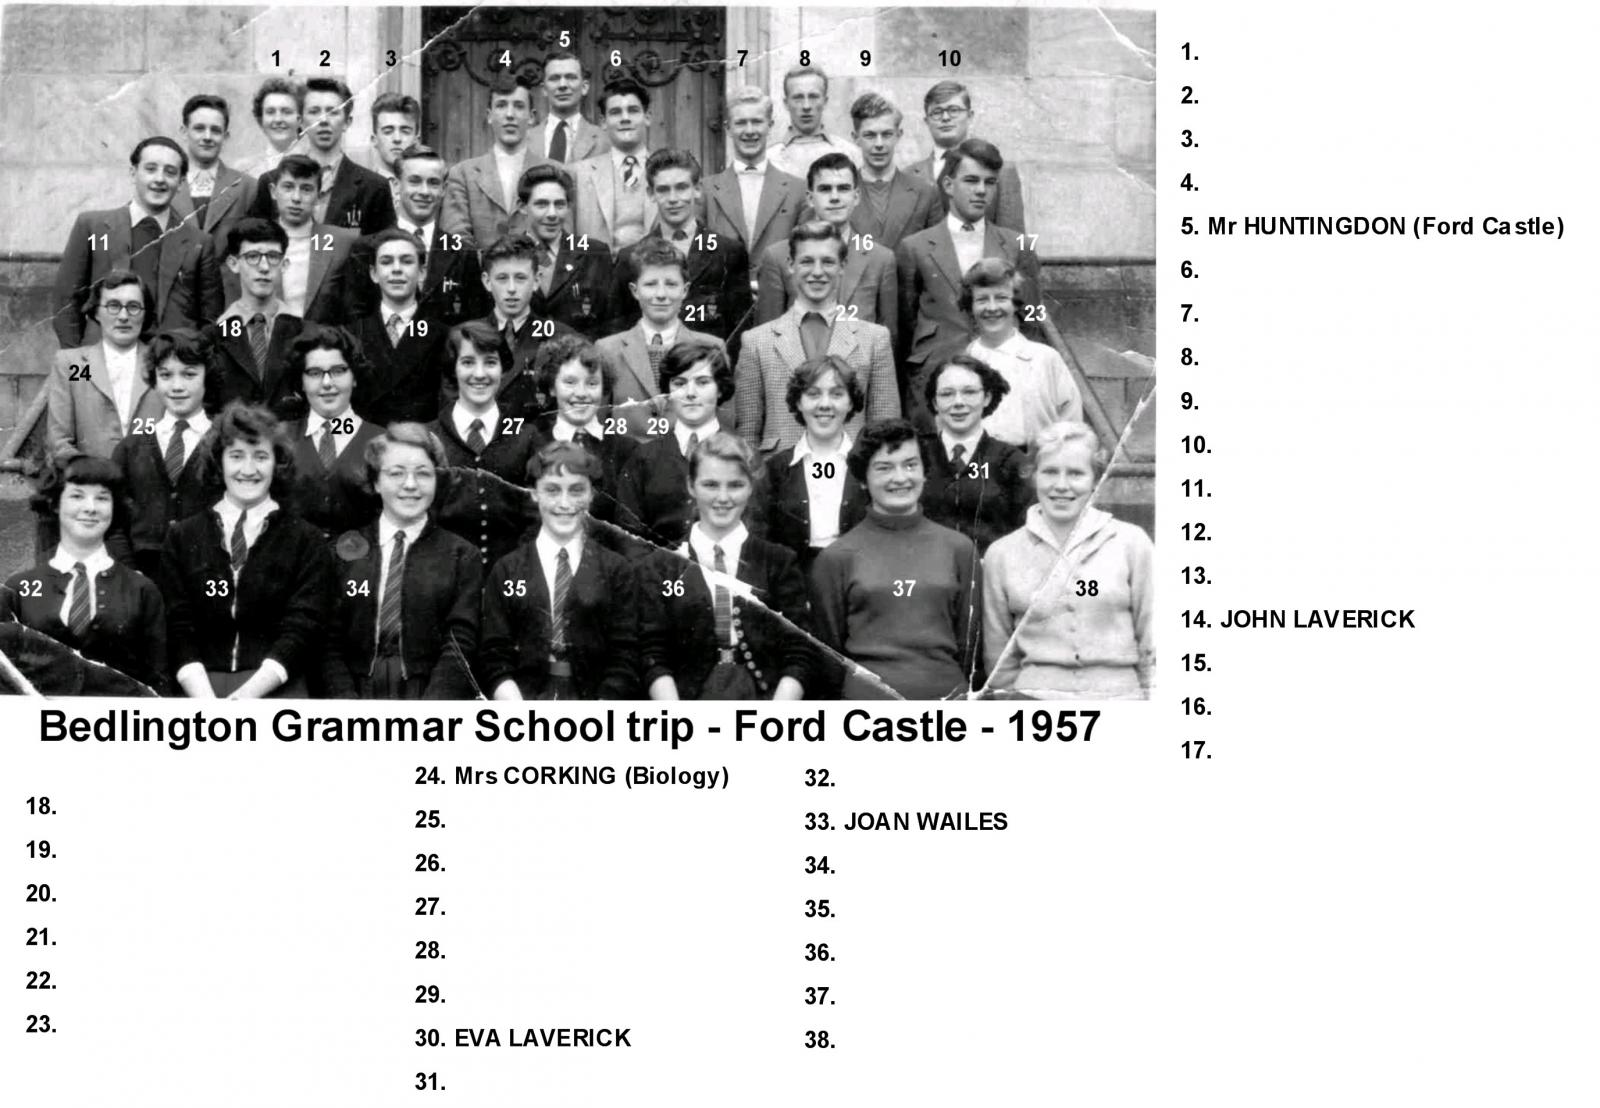 Ford Castle trip - 1957